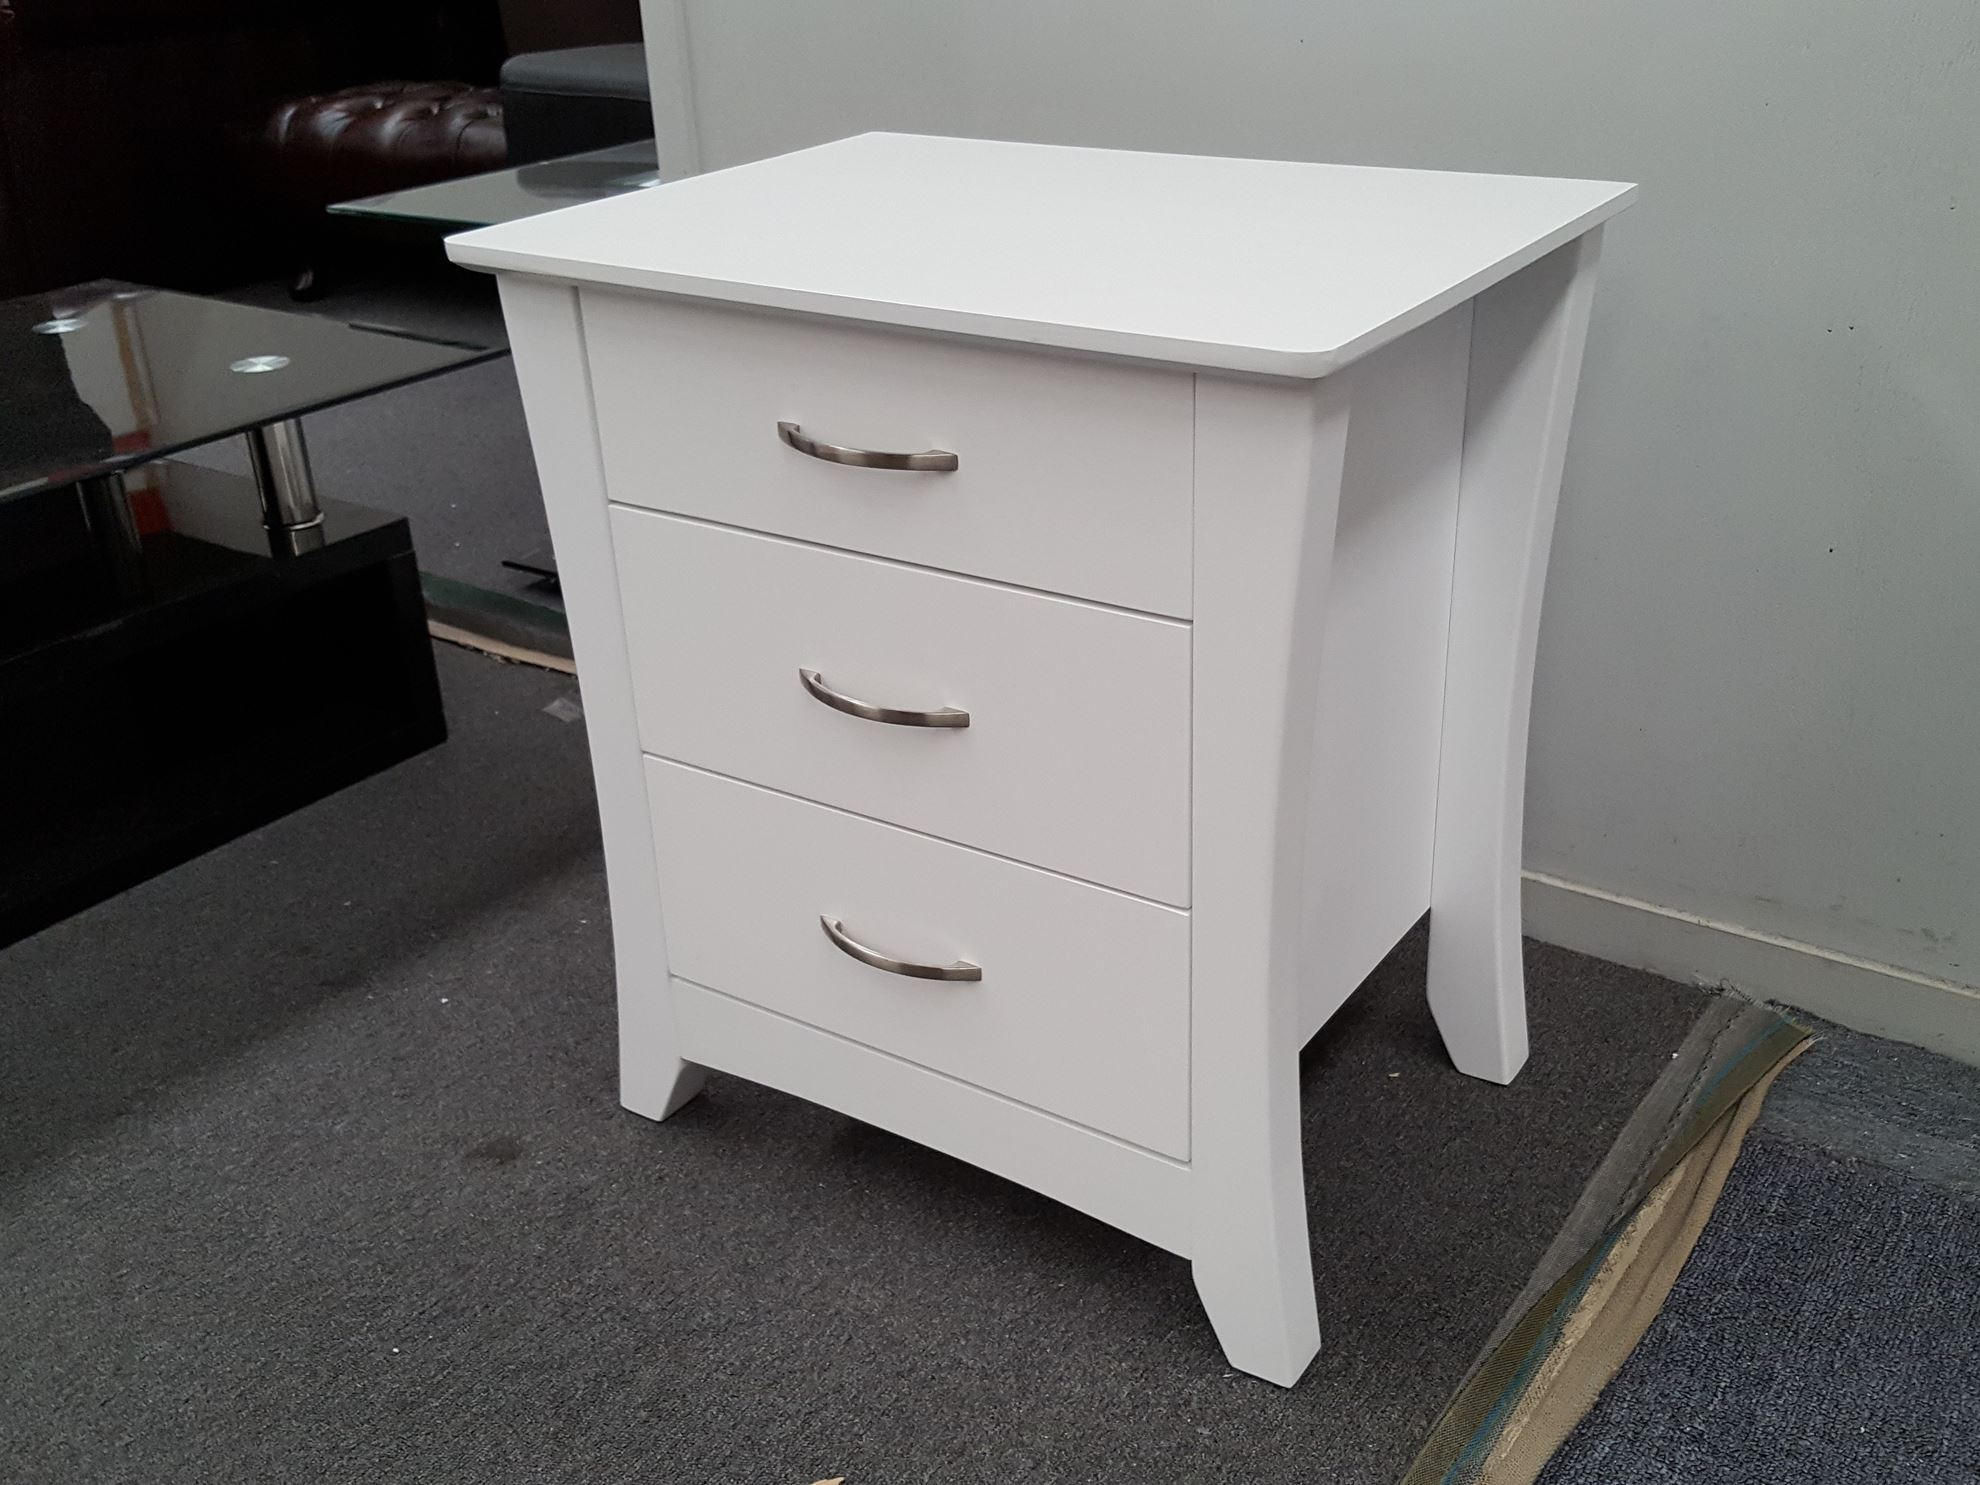 glass dalton silver small white top preusser end bedside beem hafley manning storage chest antique oak retro mirrored target adeptus table drawer console side black pine tables